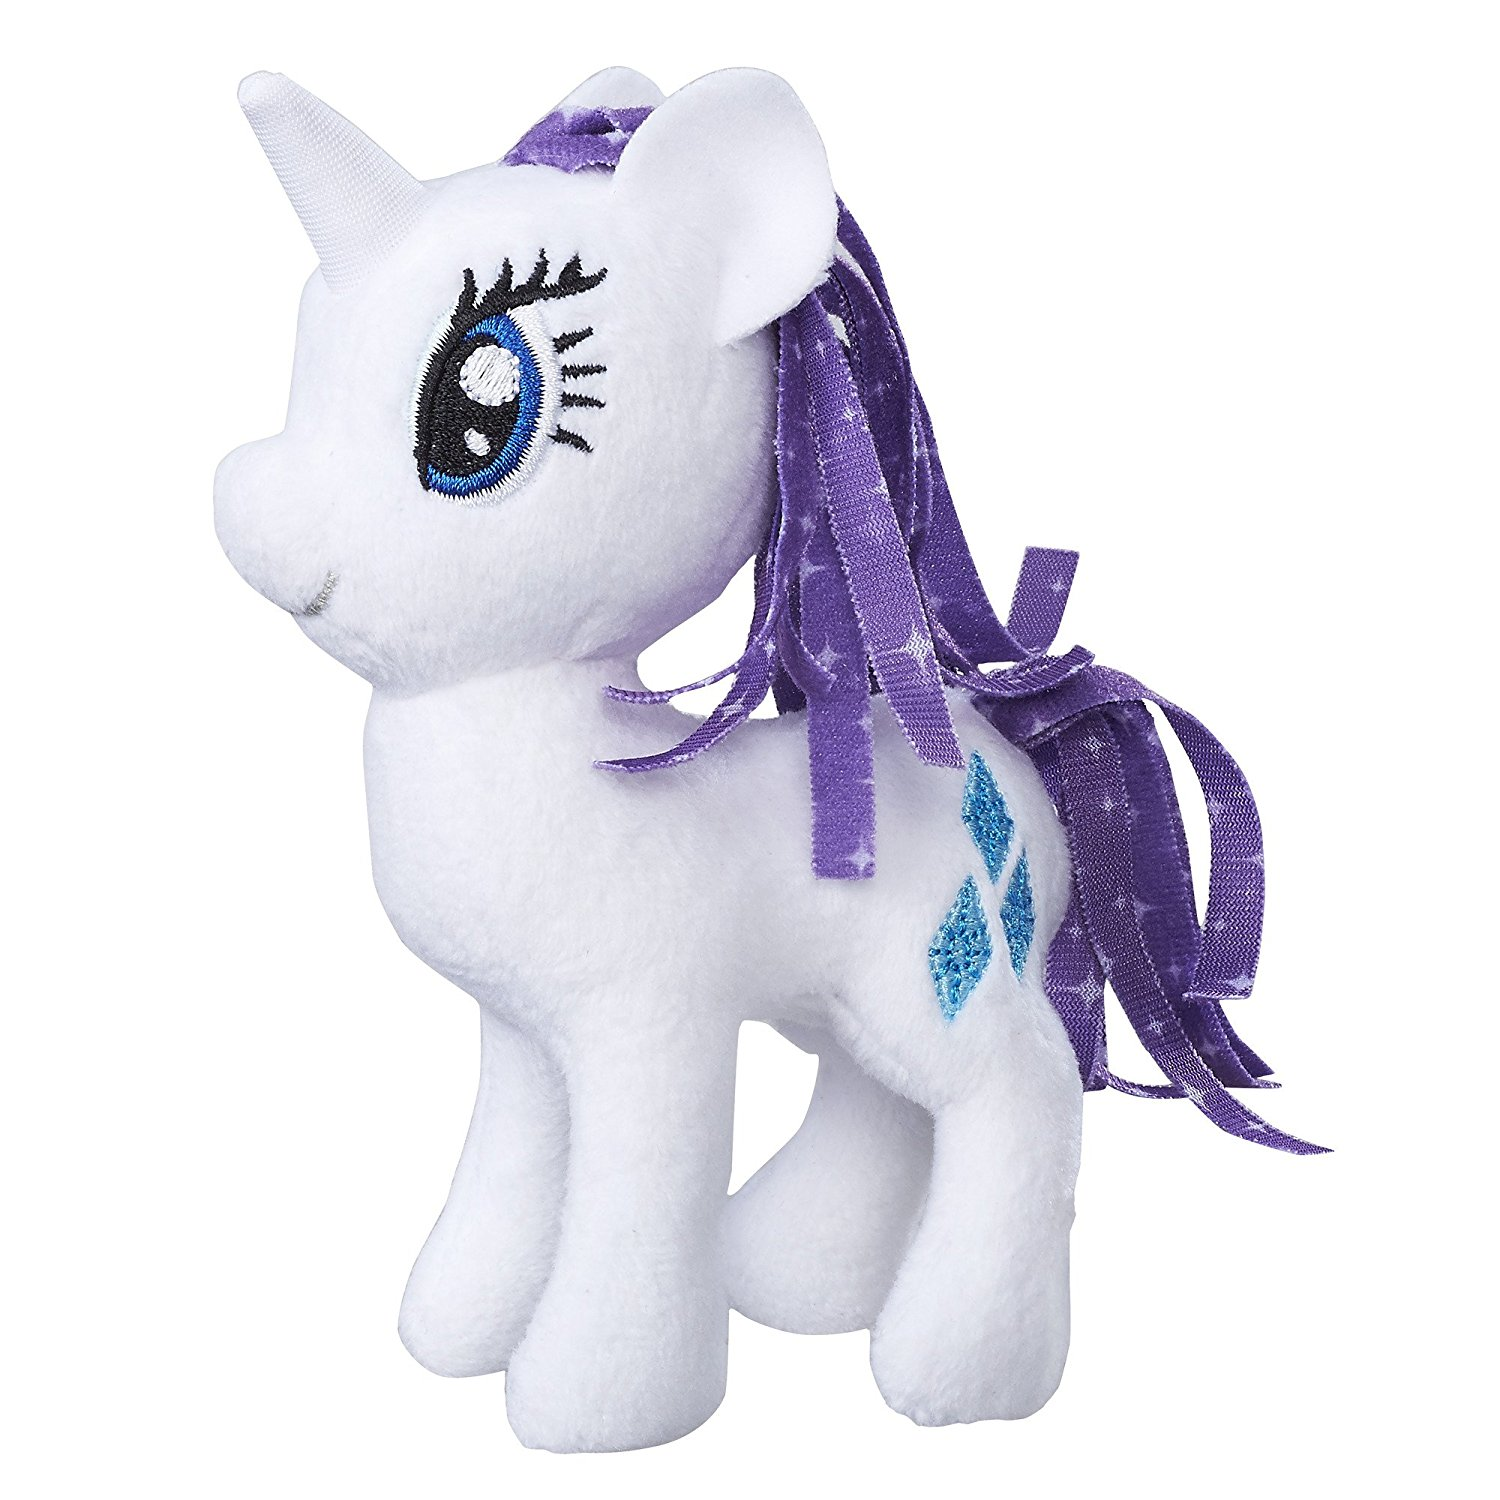 Friendship is Magic Rarity Small Plush, Soft, plush body By My Little Pony by